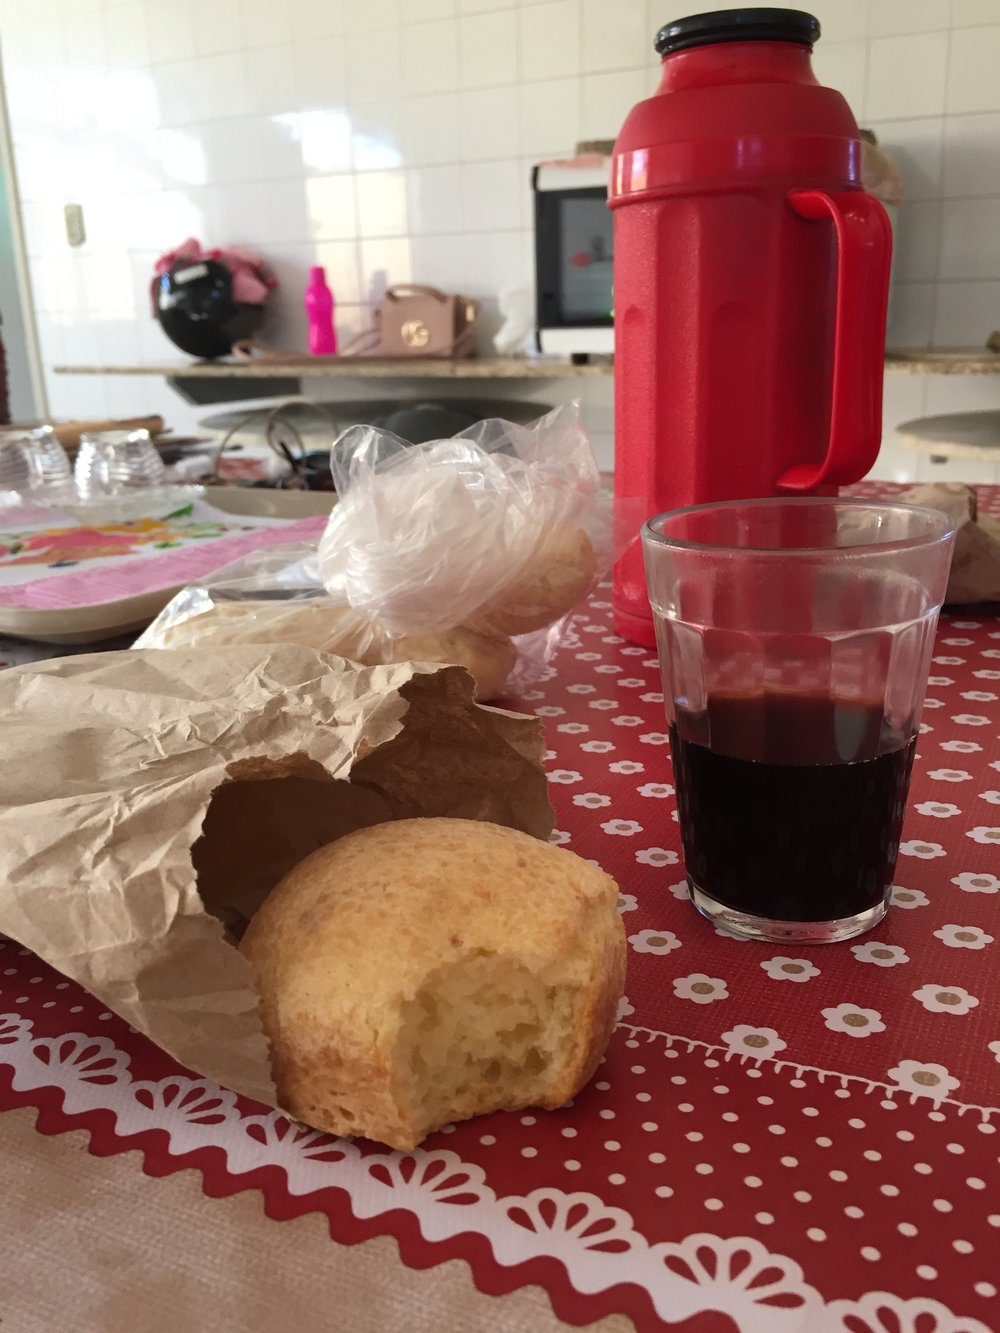 Pao de queijo and coffee, my favorite breakfast